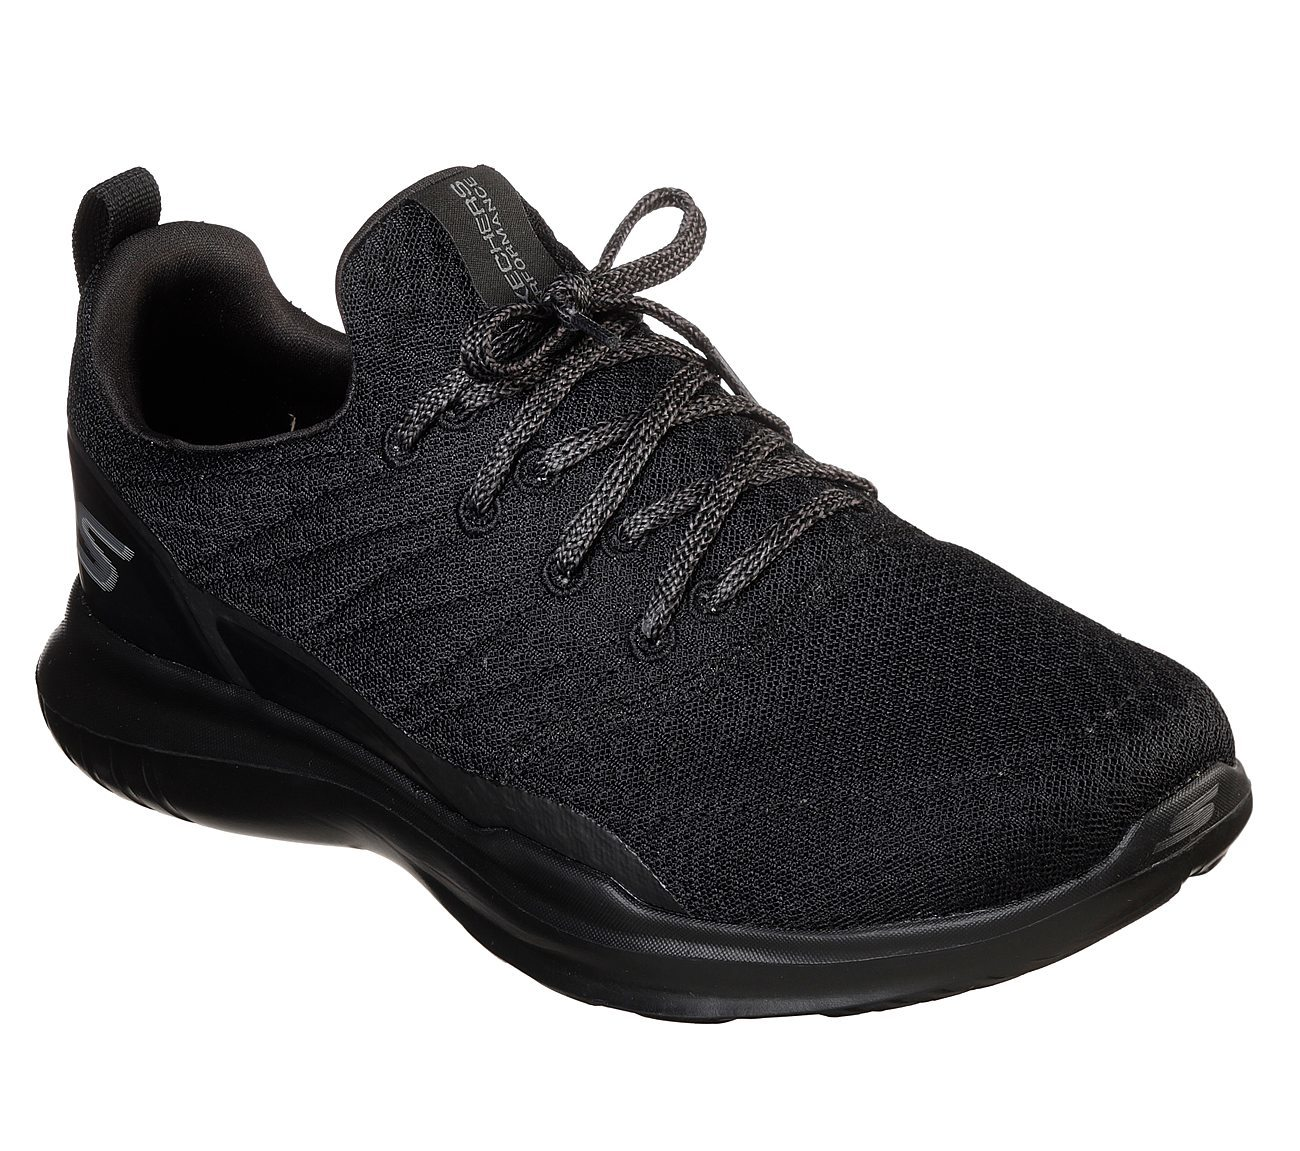 "Skechers Men's Gorun Mojo A "" Radar Walking Shoes - Black, 11.5"